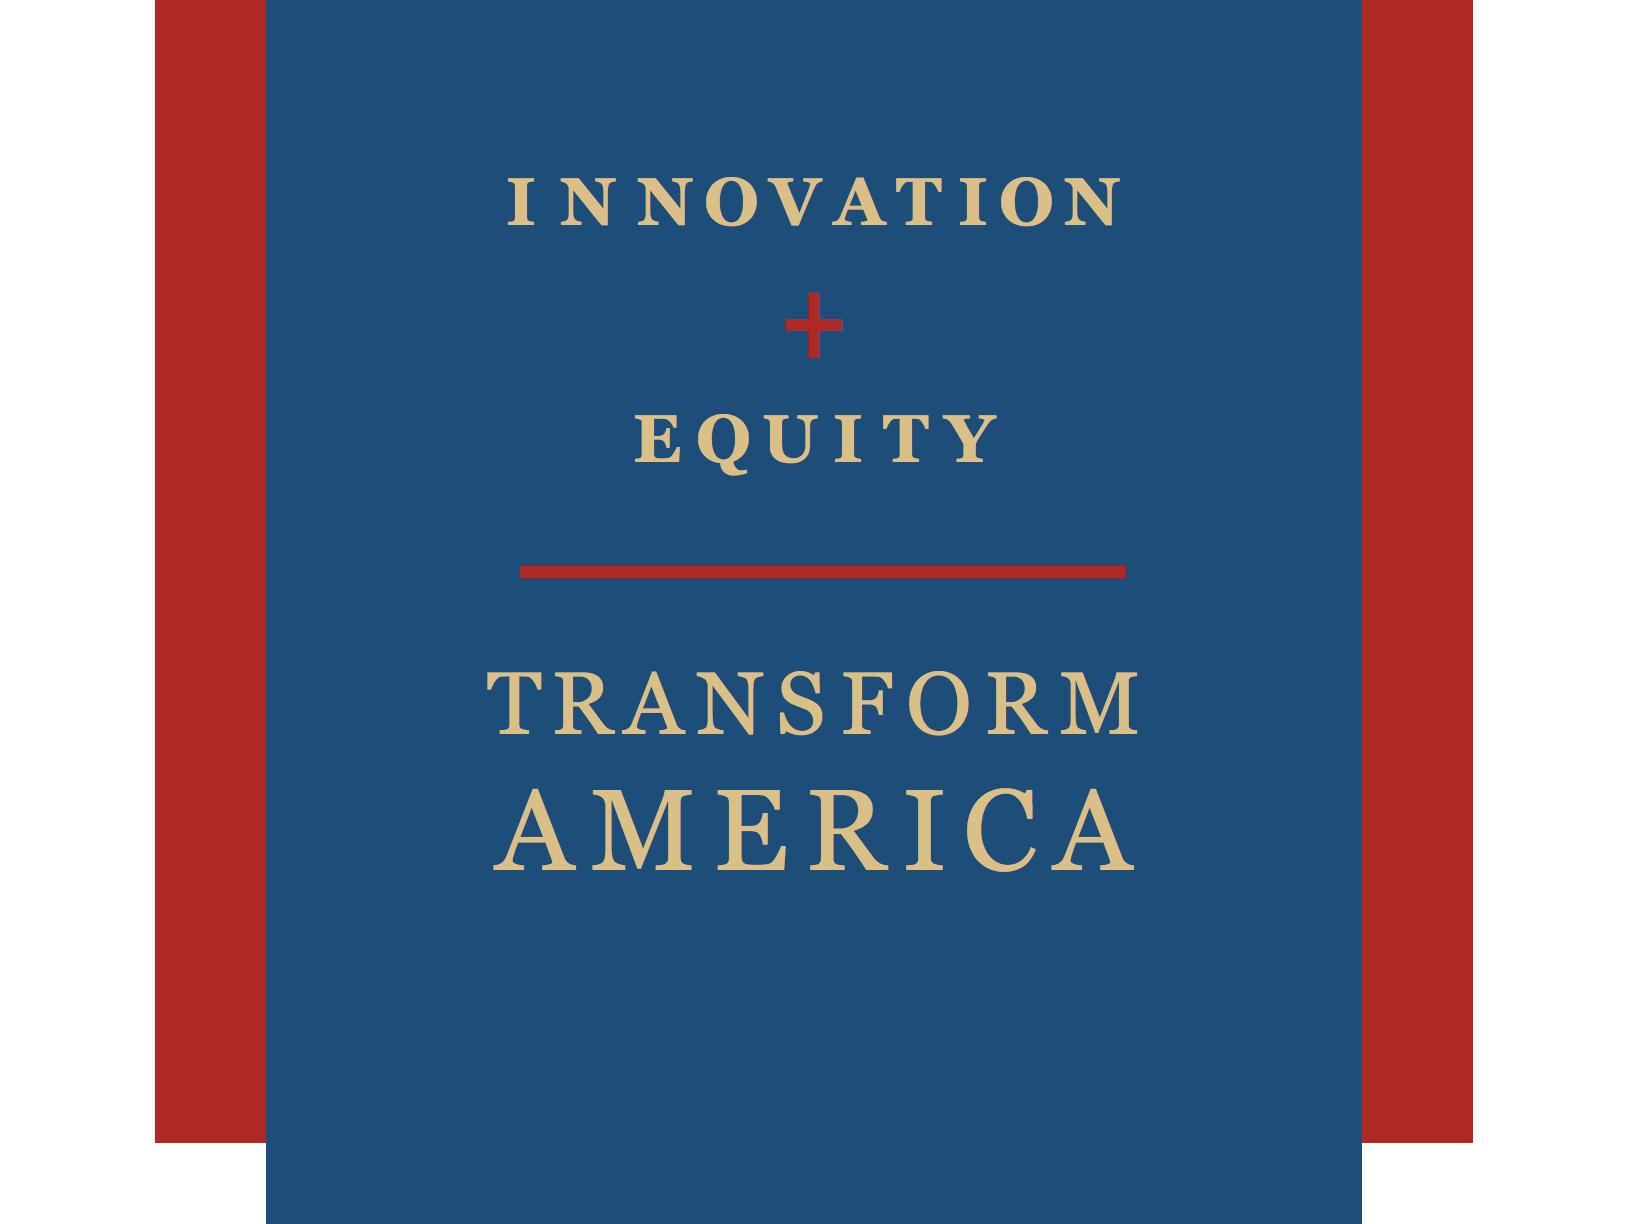 Innovation_and_Equity_Can_Transform_America.png